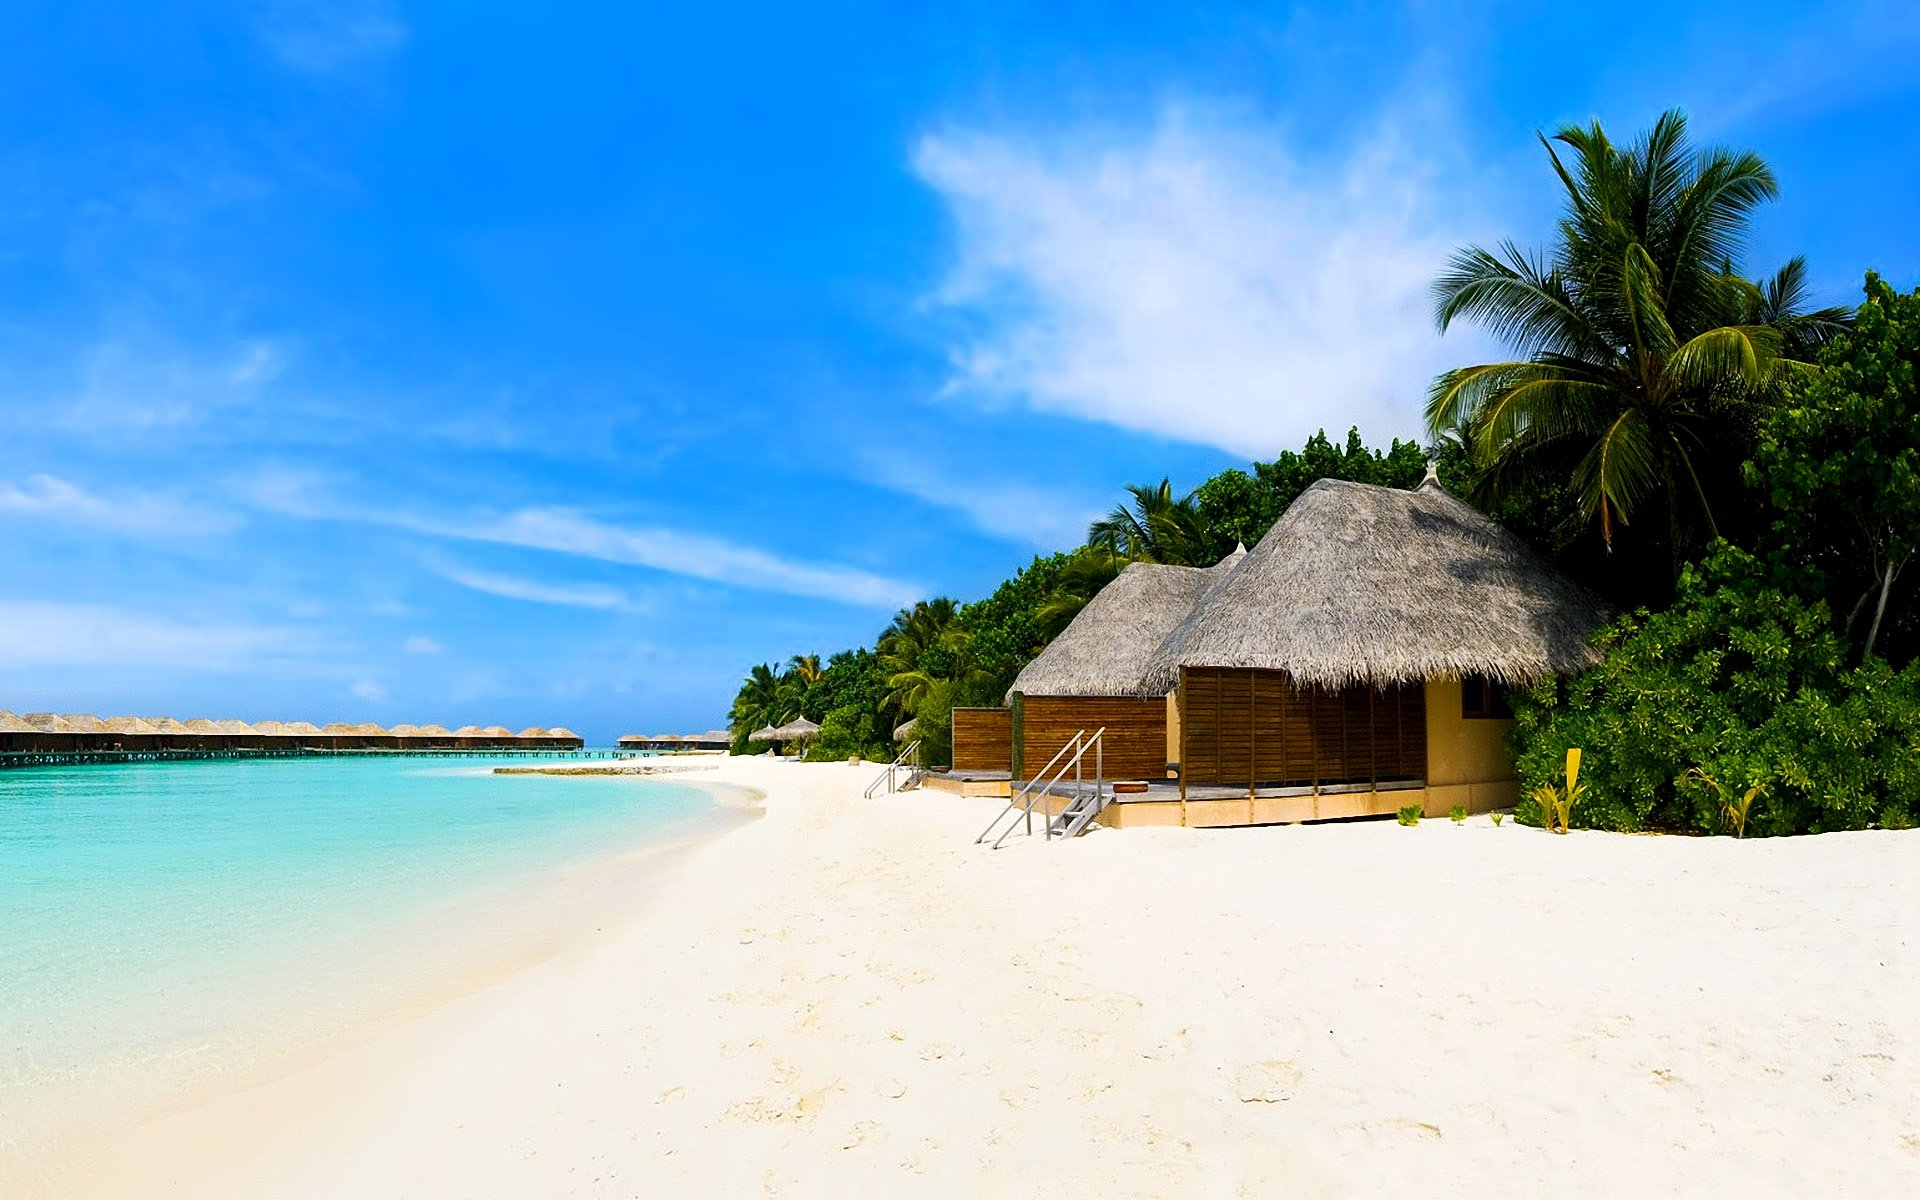 Beach bungalows on the tropical island wallpaper   Beach Wallpapers 1920x1200